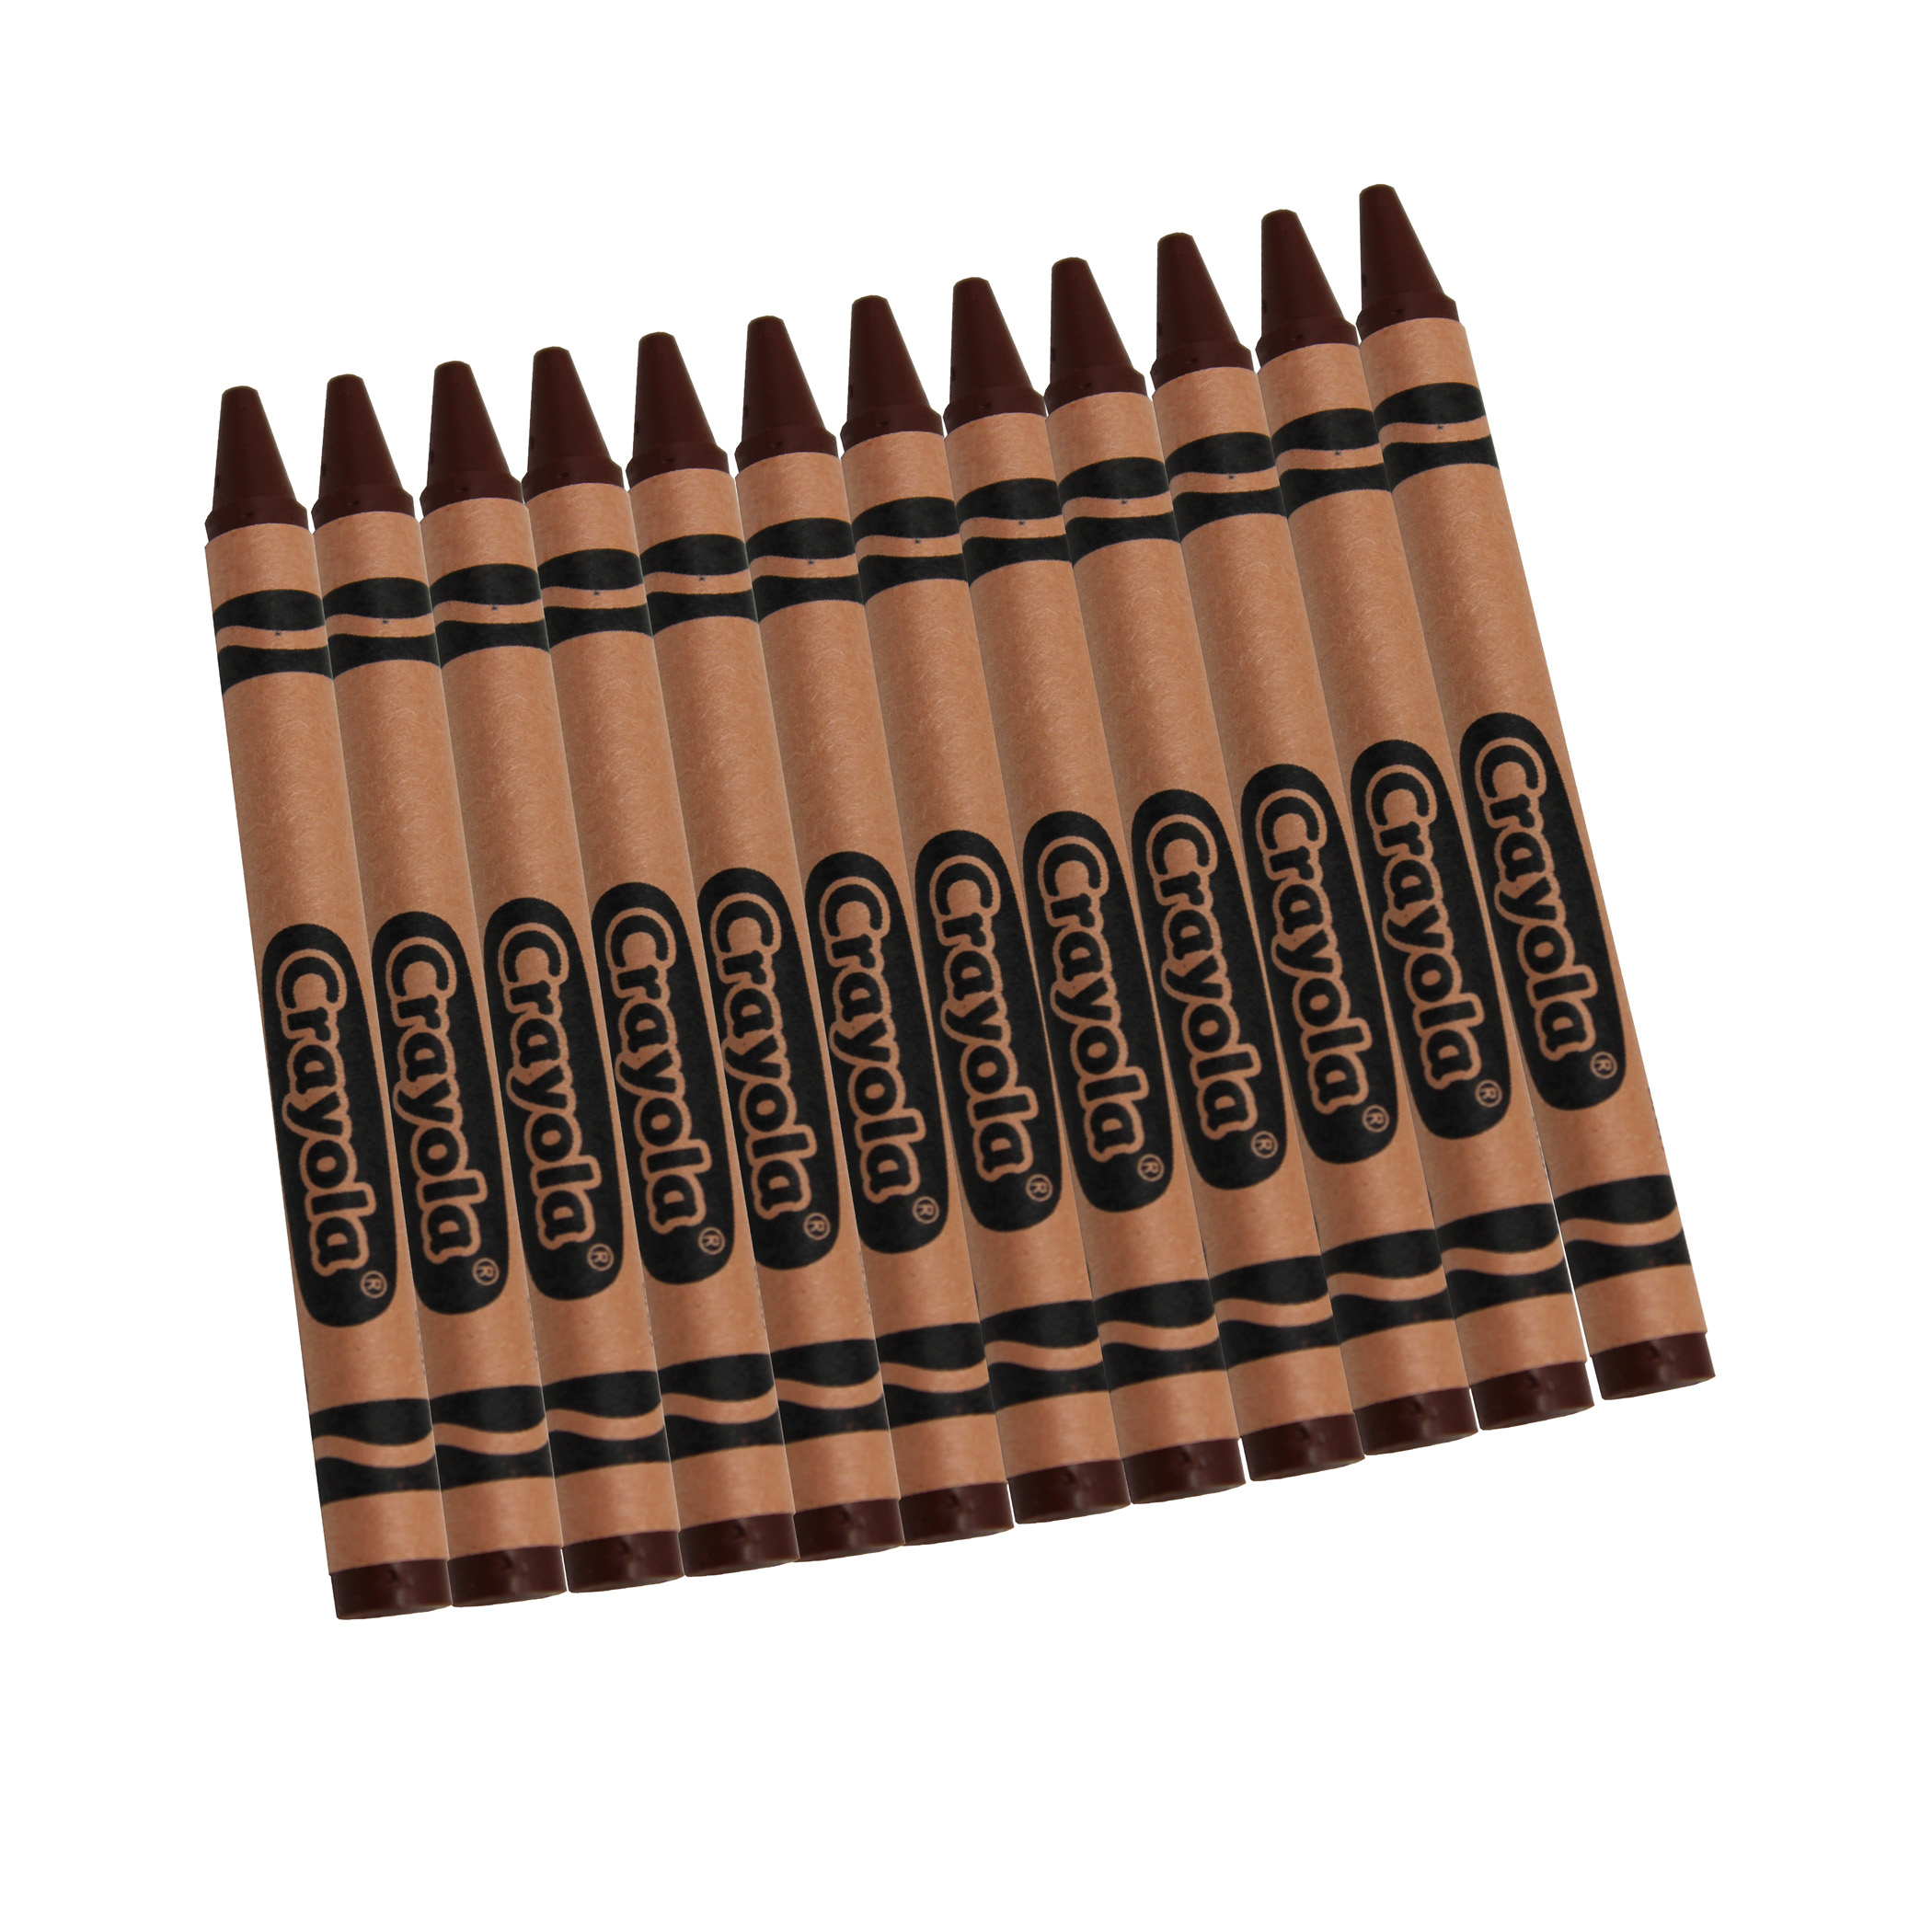 Crayola Bulk Crayons, Brown, Regular Size, 12 per box, Set of 12 boxes